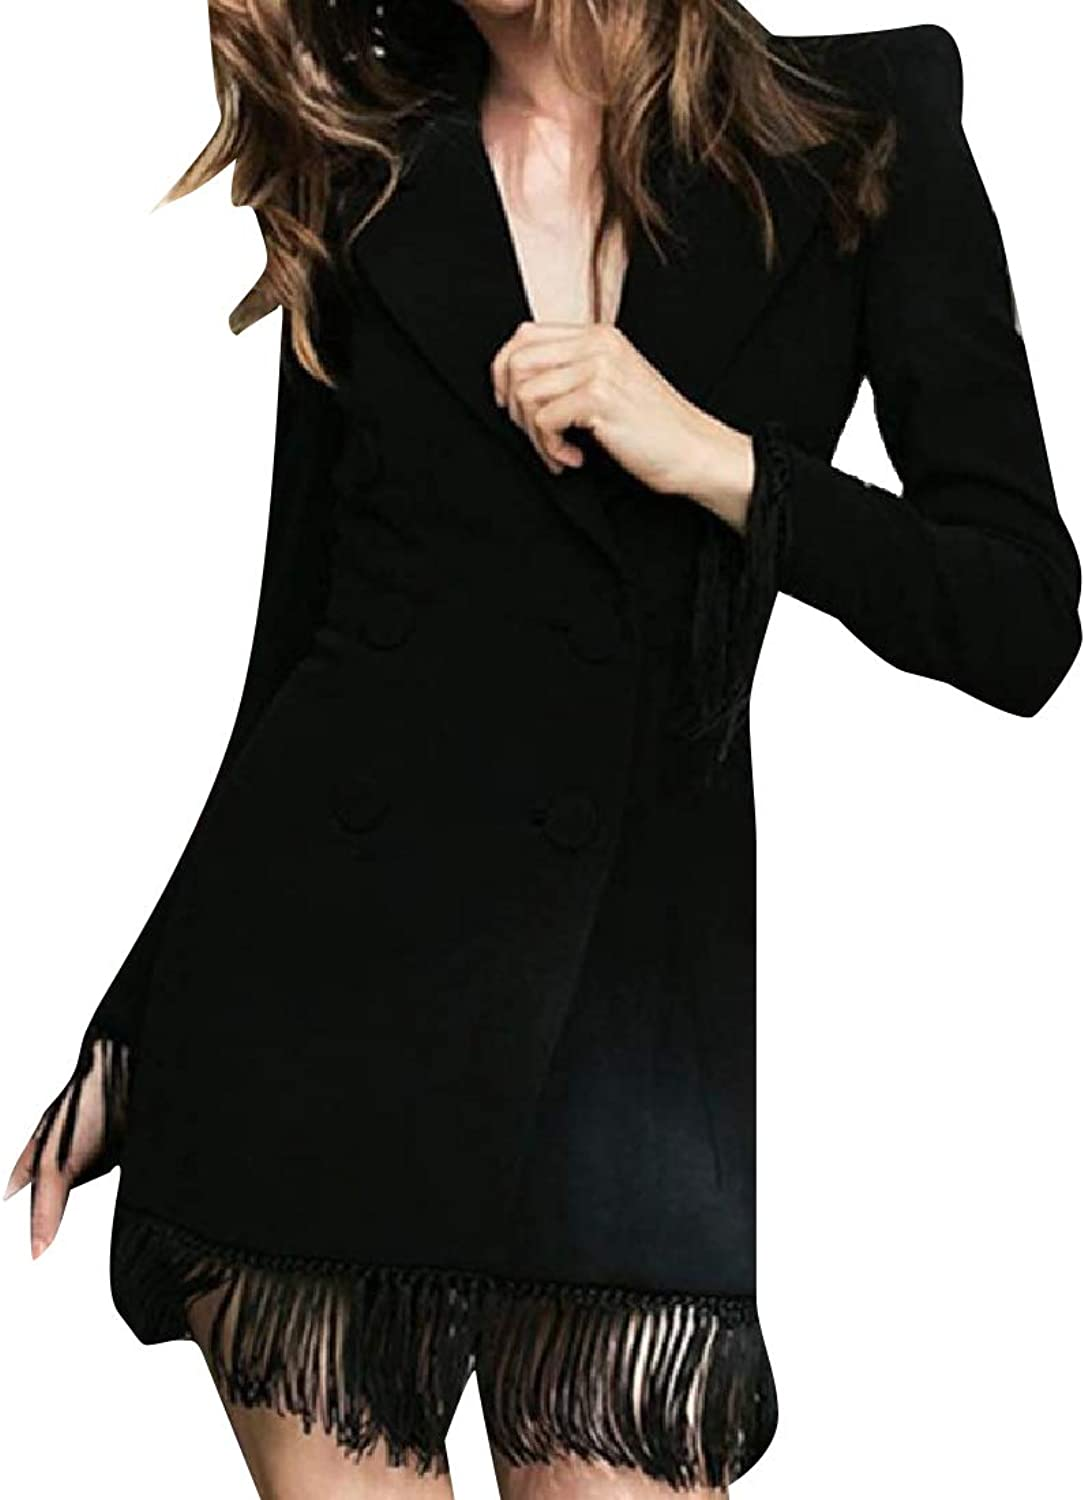 TaoNice Women Classic Fit Tassel Edge WrapFront Groom Tuxedo Suit